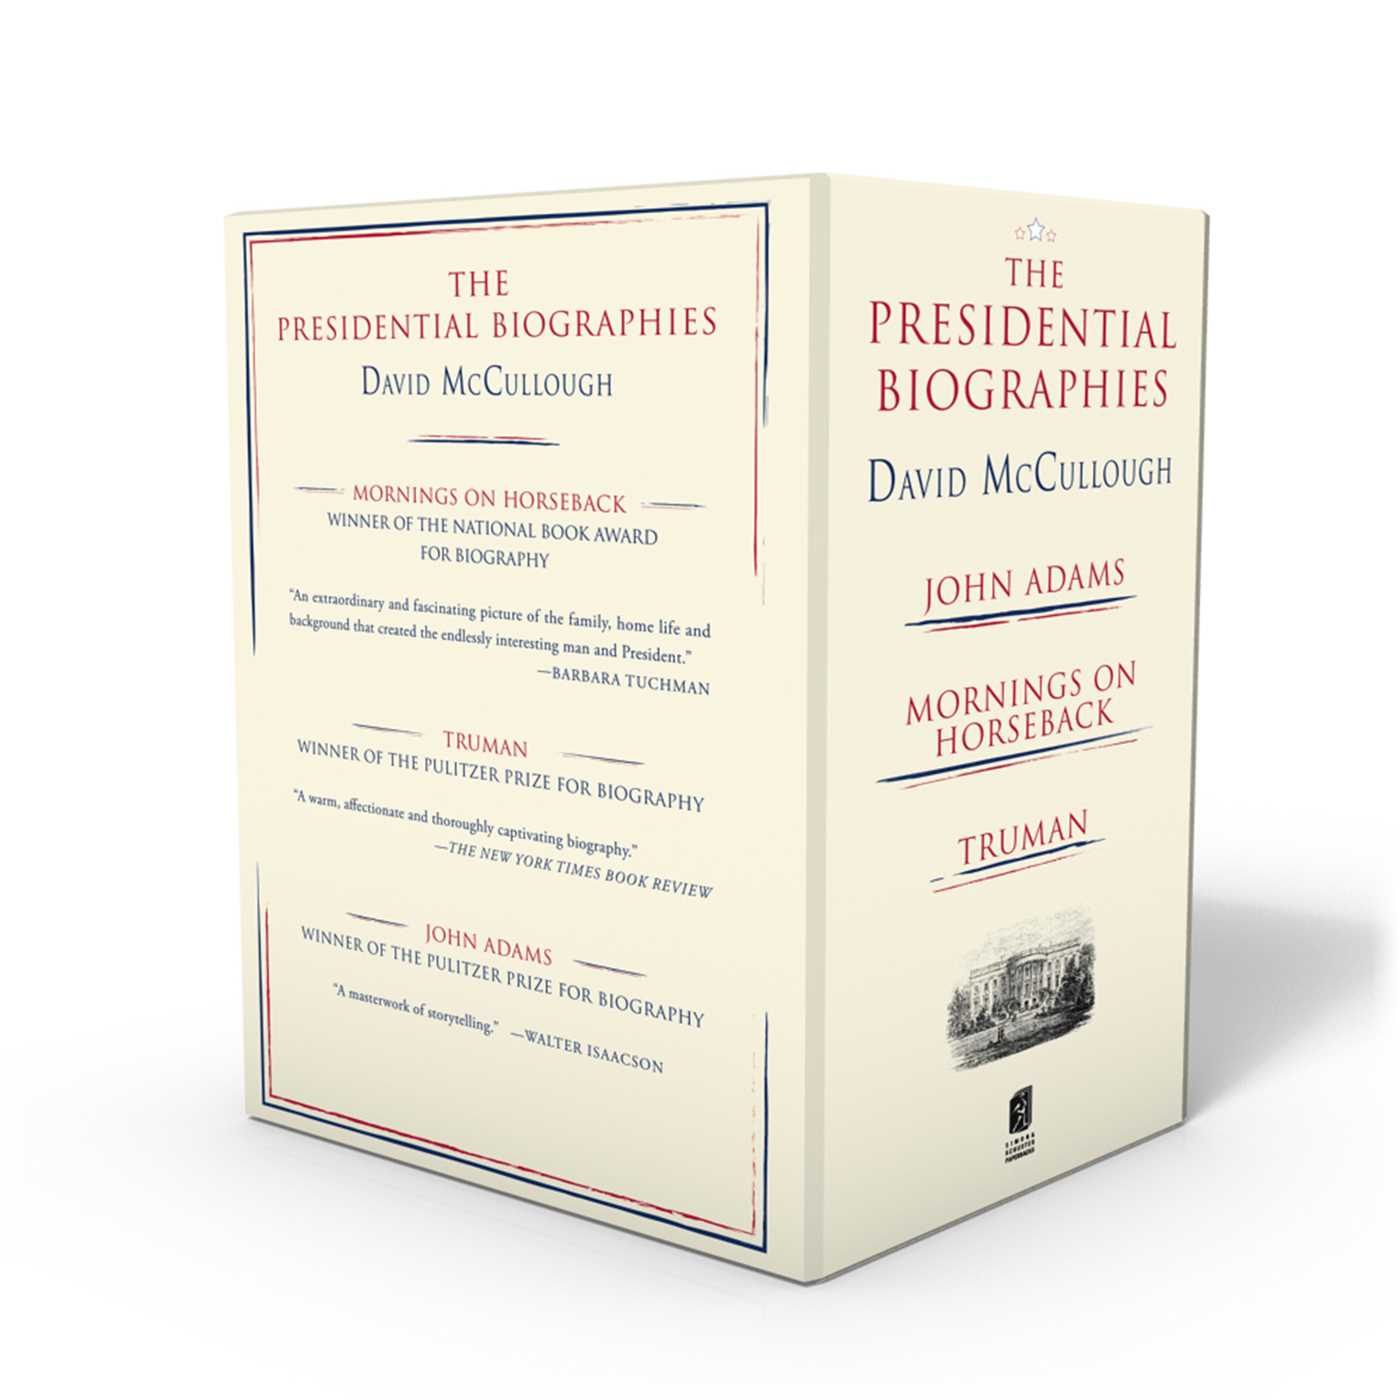 David mccullough the presidential biographies 9781501189029 hr back